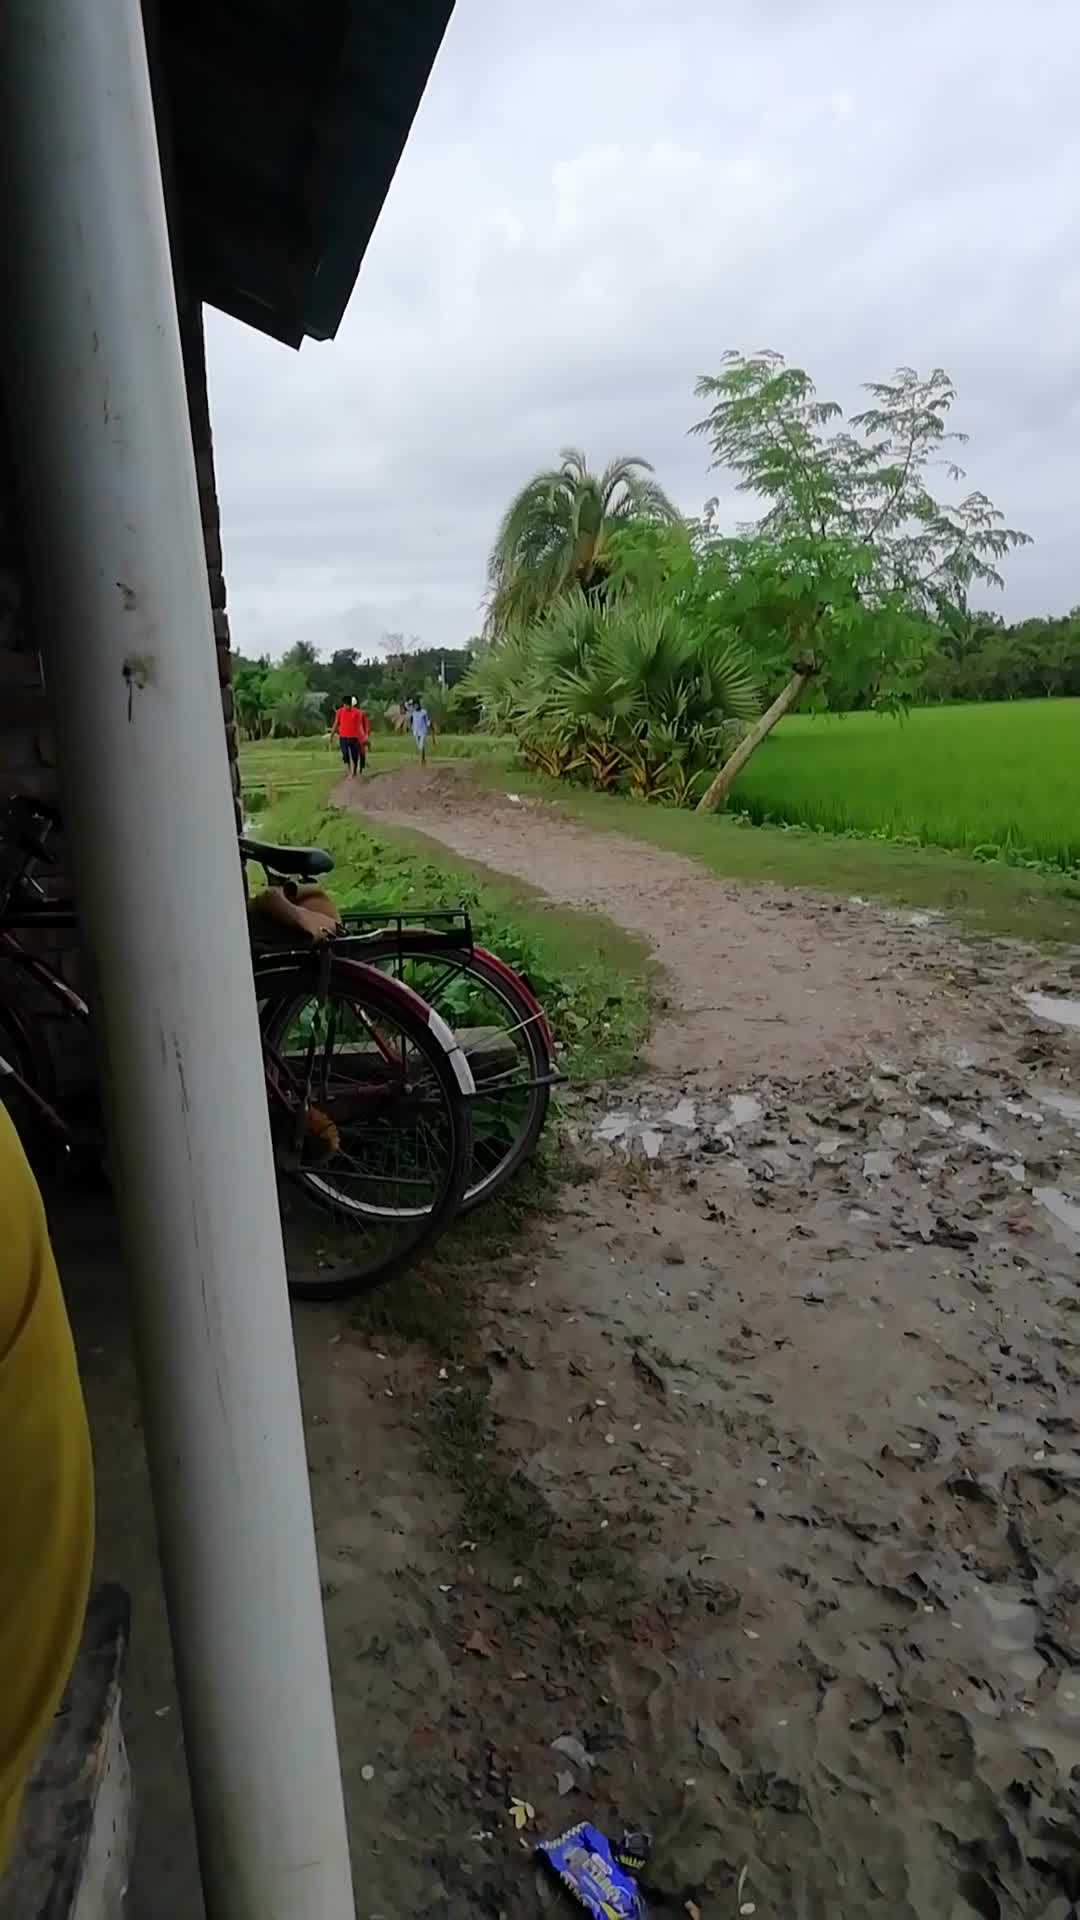 This road looks more beautiful in Satkhira district Jiala village